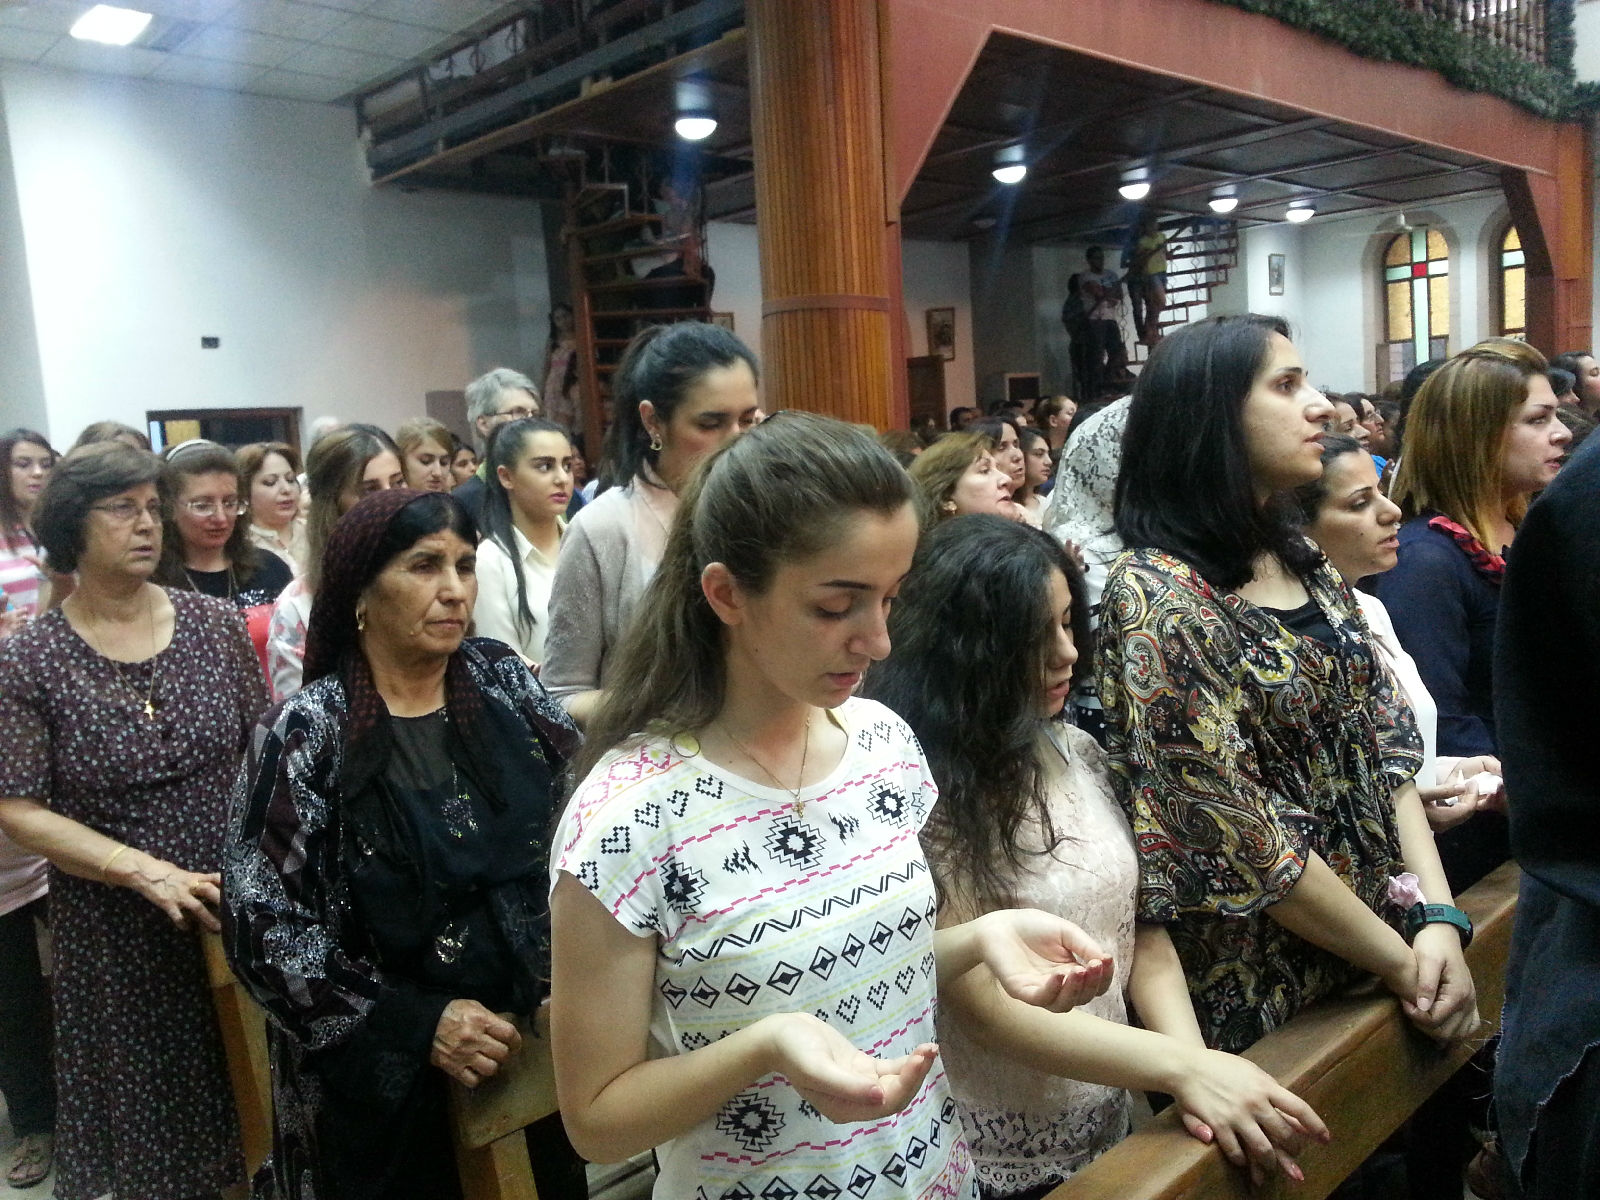 Iraqi christians united in prayer